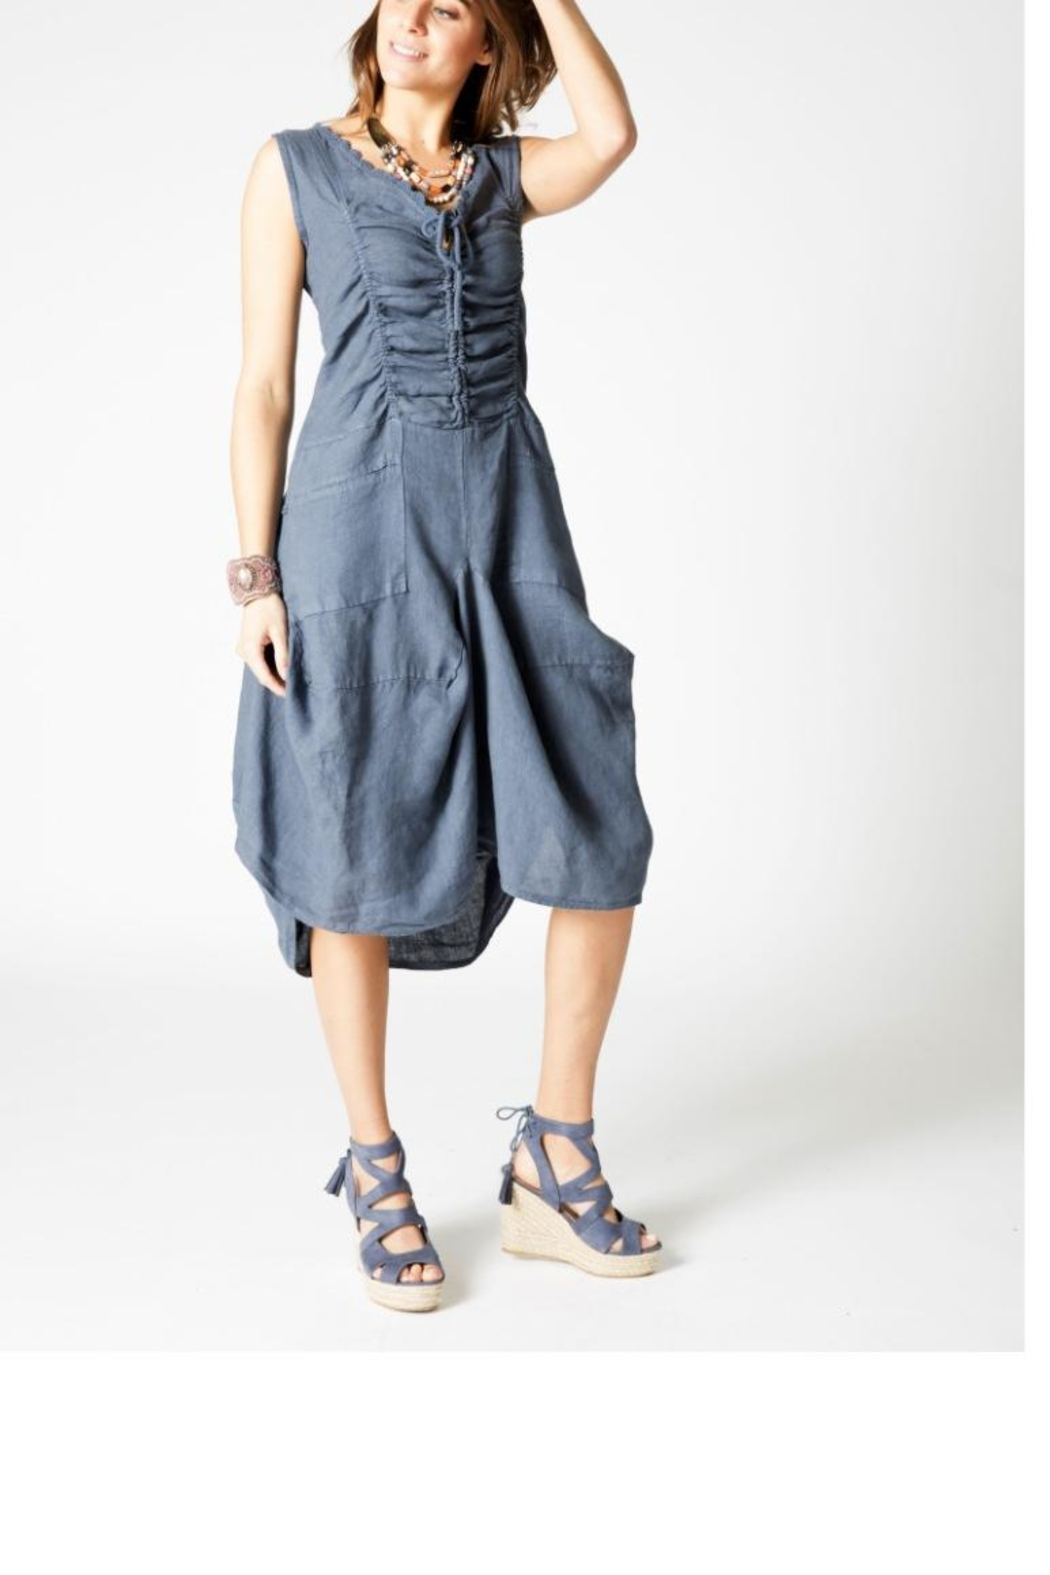 e0424869318 M made in Italy Linen Tie Dress from California by The Bag Lady ...